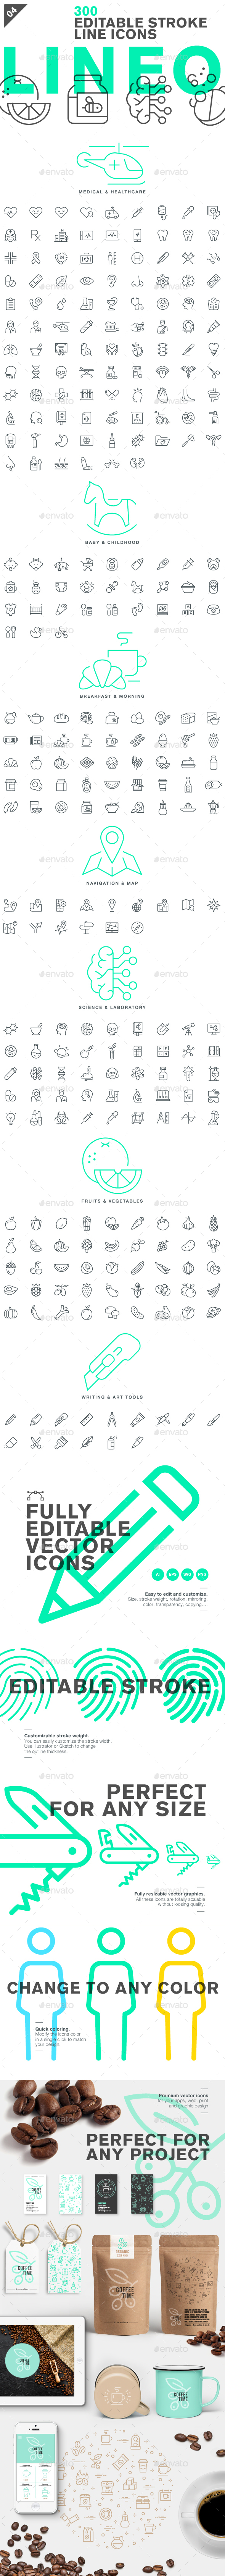 Lineo - Pack 4 - 300 Icons - Icons